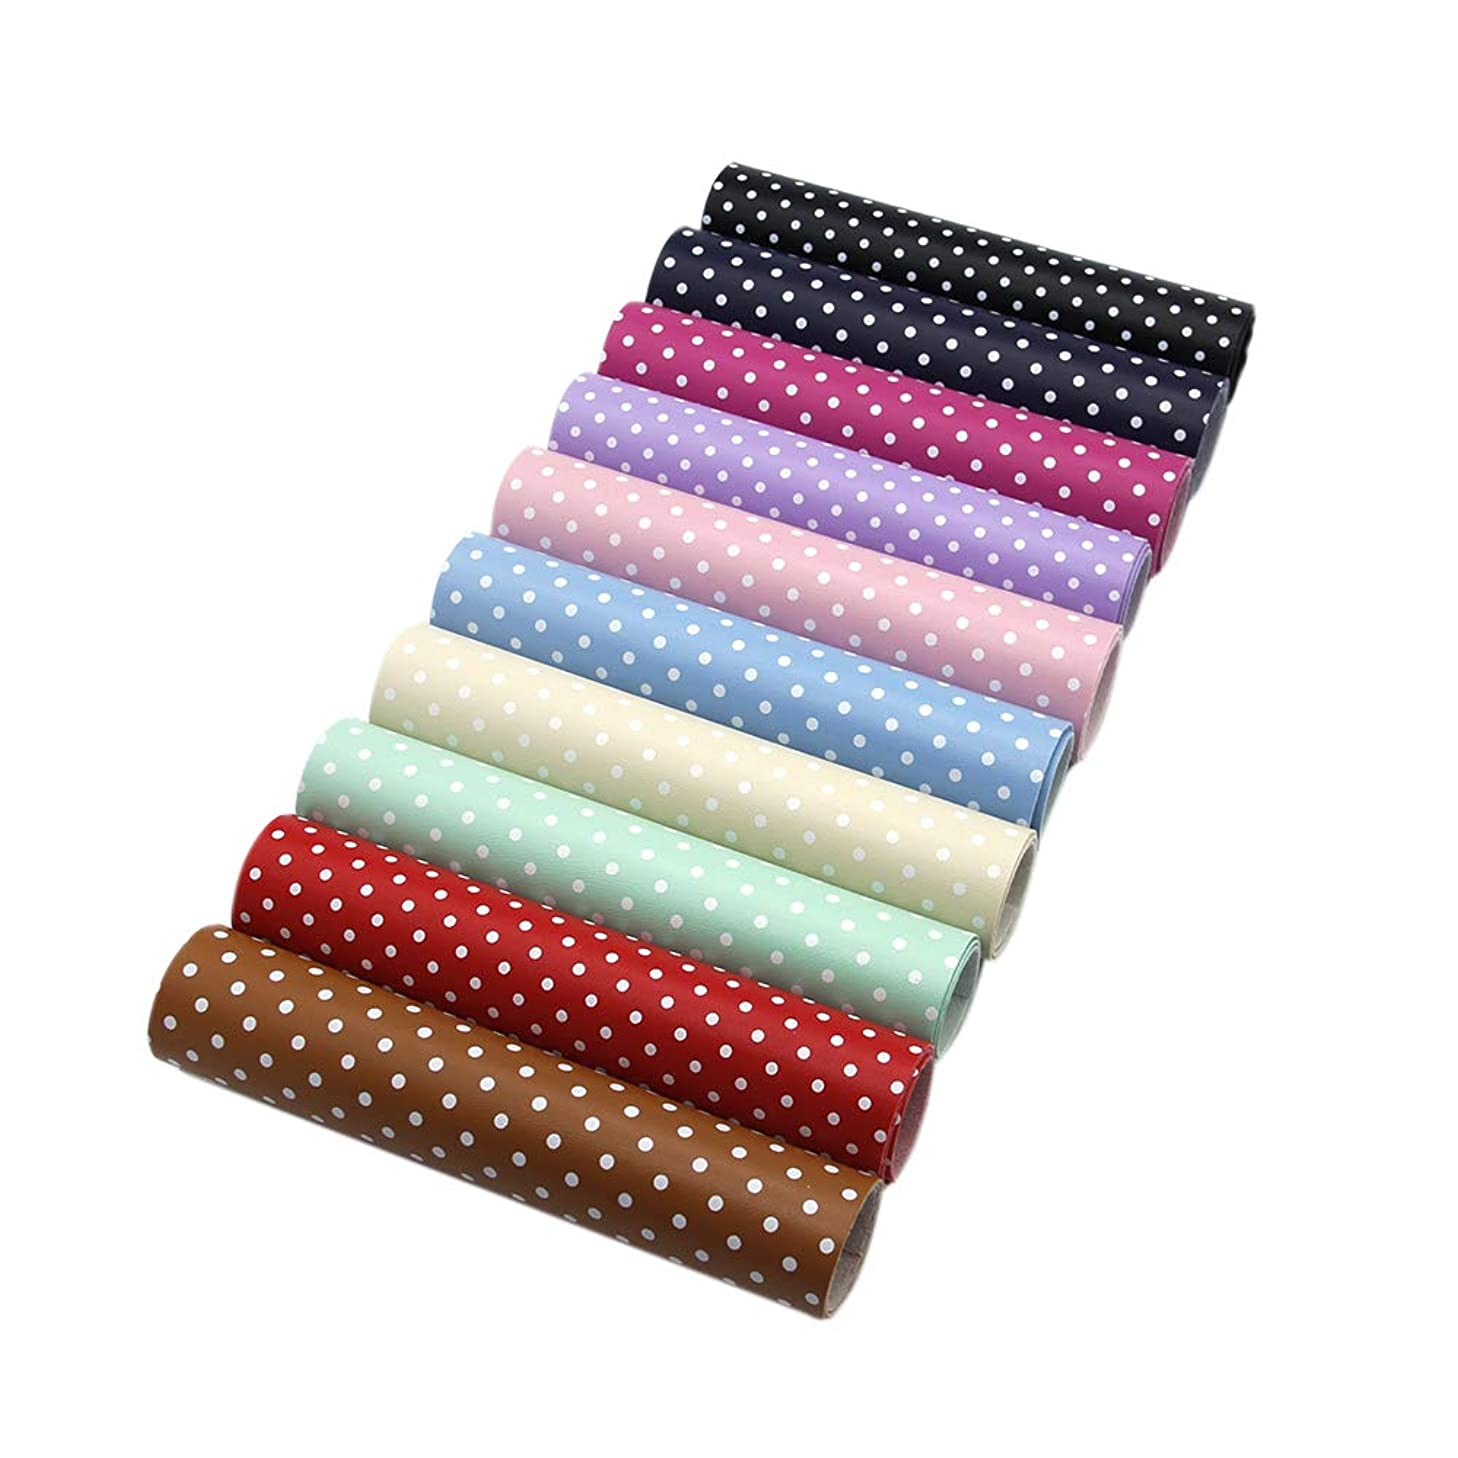 David Angie Solid Color Dots Printed Faux Leather Fabric Sheet 10 Pcs 8